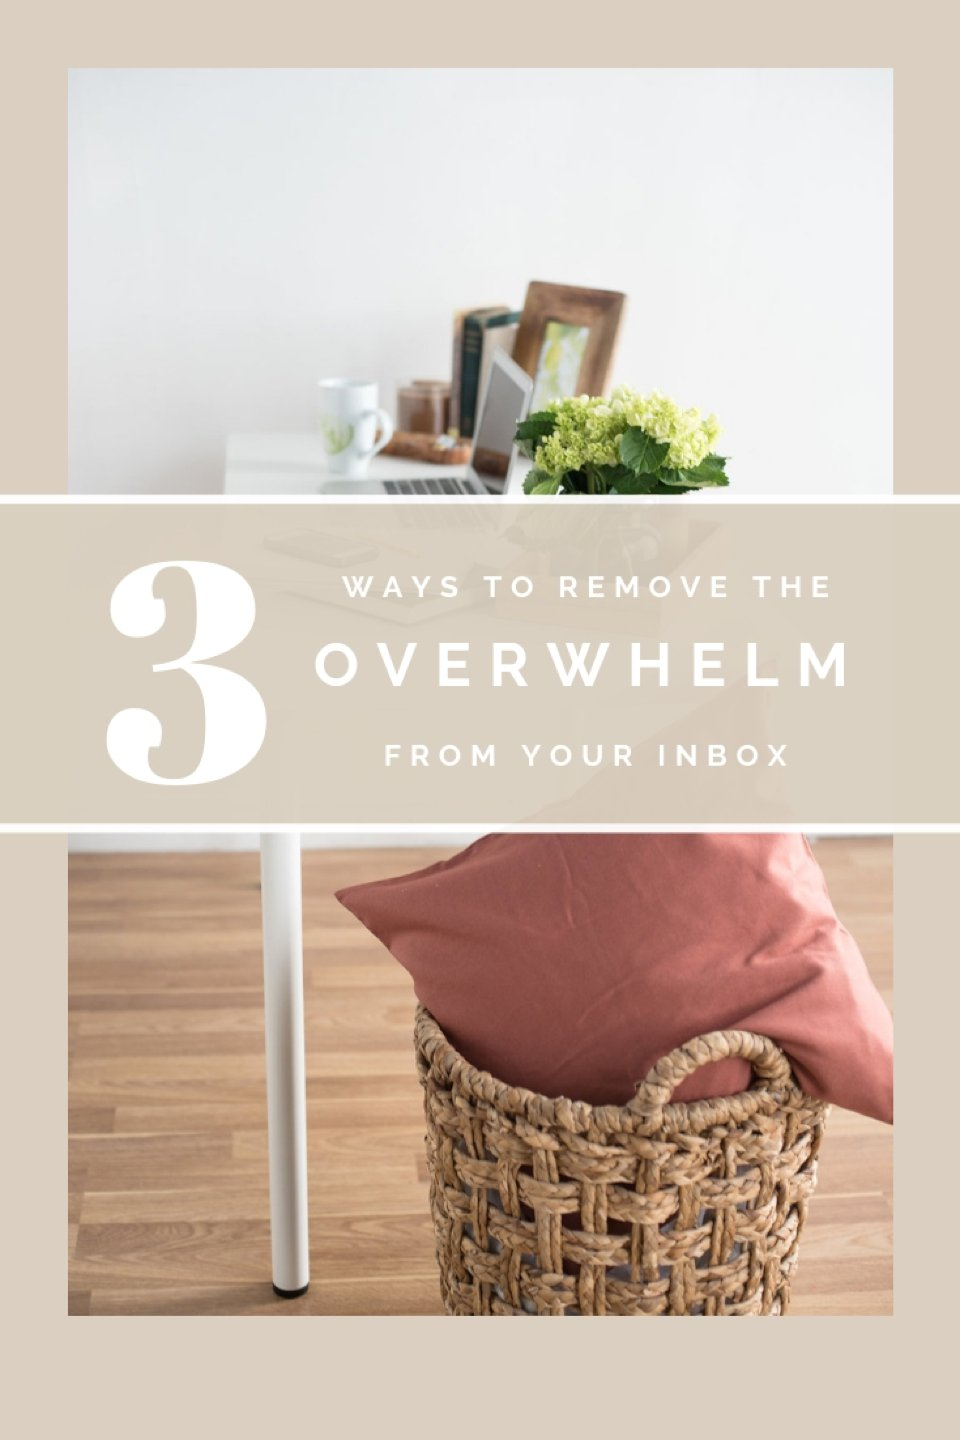 Here are a couple quick and easy inbox tips to help increase your organization and decrease the feeling of overwhelm when opening your inbox!  #solopreneur   #girlboss  #entrepreneur #inbox